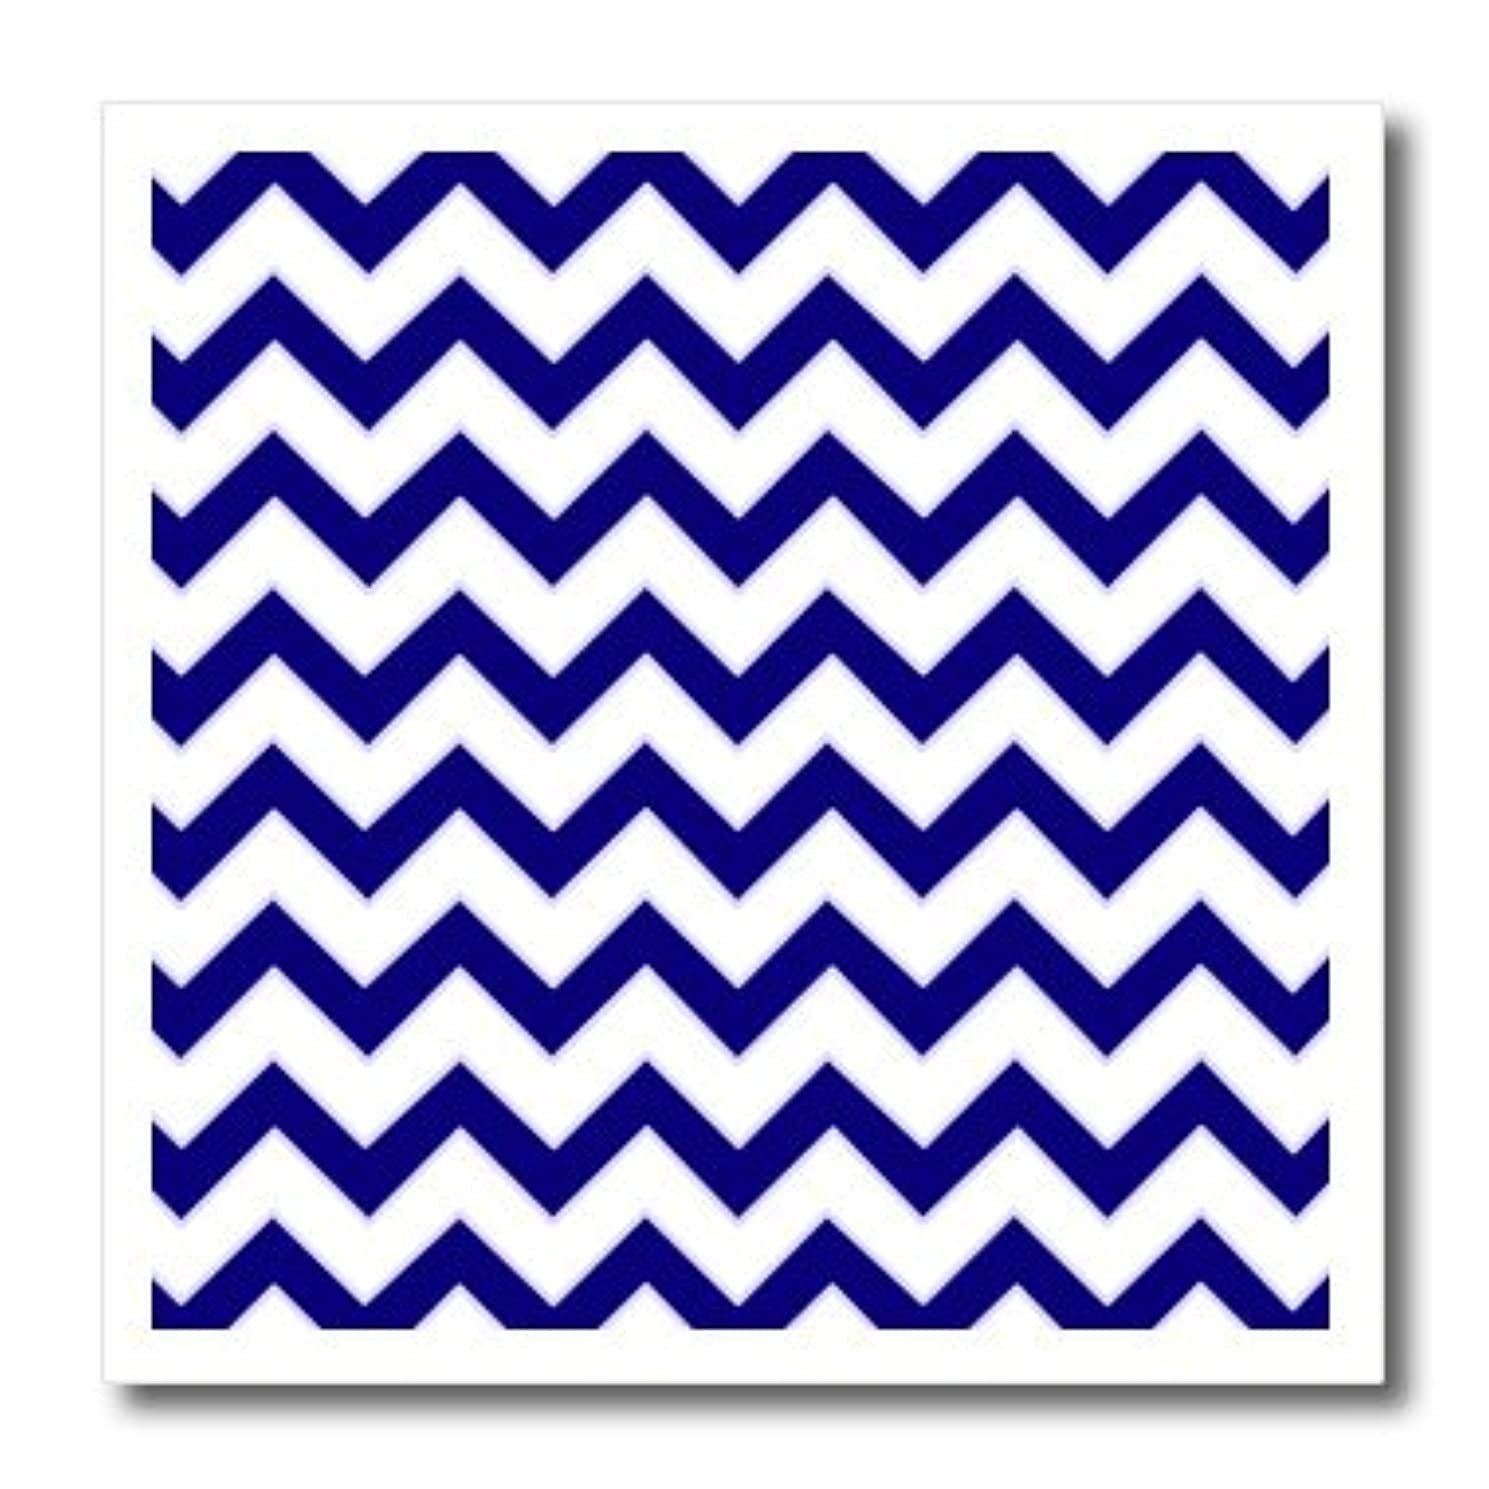 3dRose ht_110746_1 Chevron Pattern Navy Blue and White Zigzag-Iron on Heat Transfer for Material, 8 by 8-Inch, White